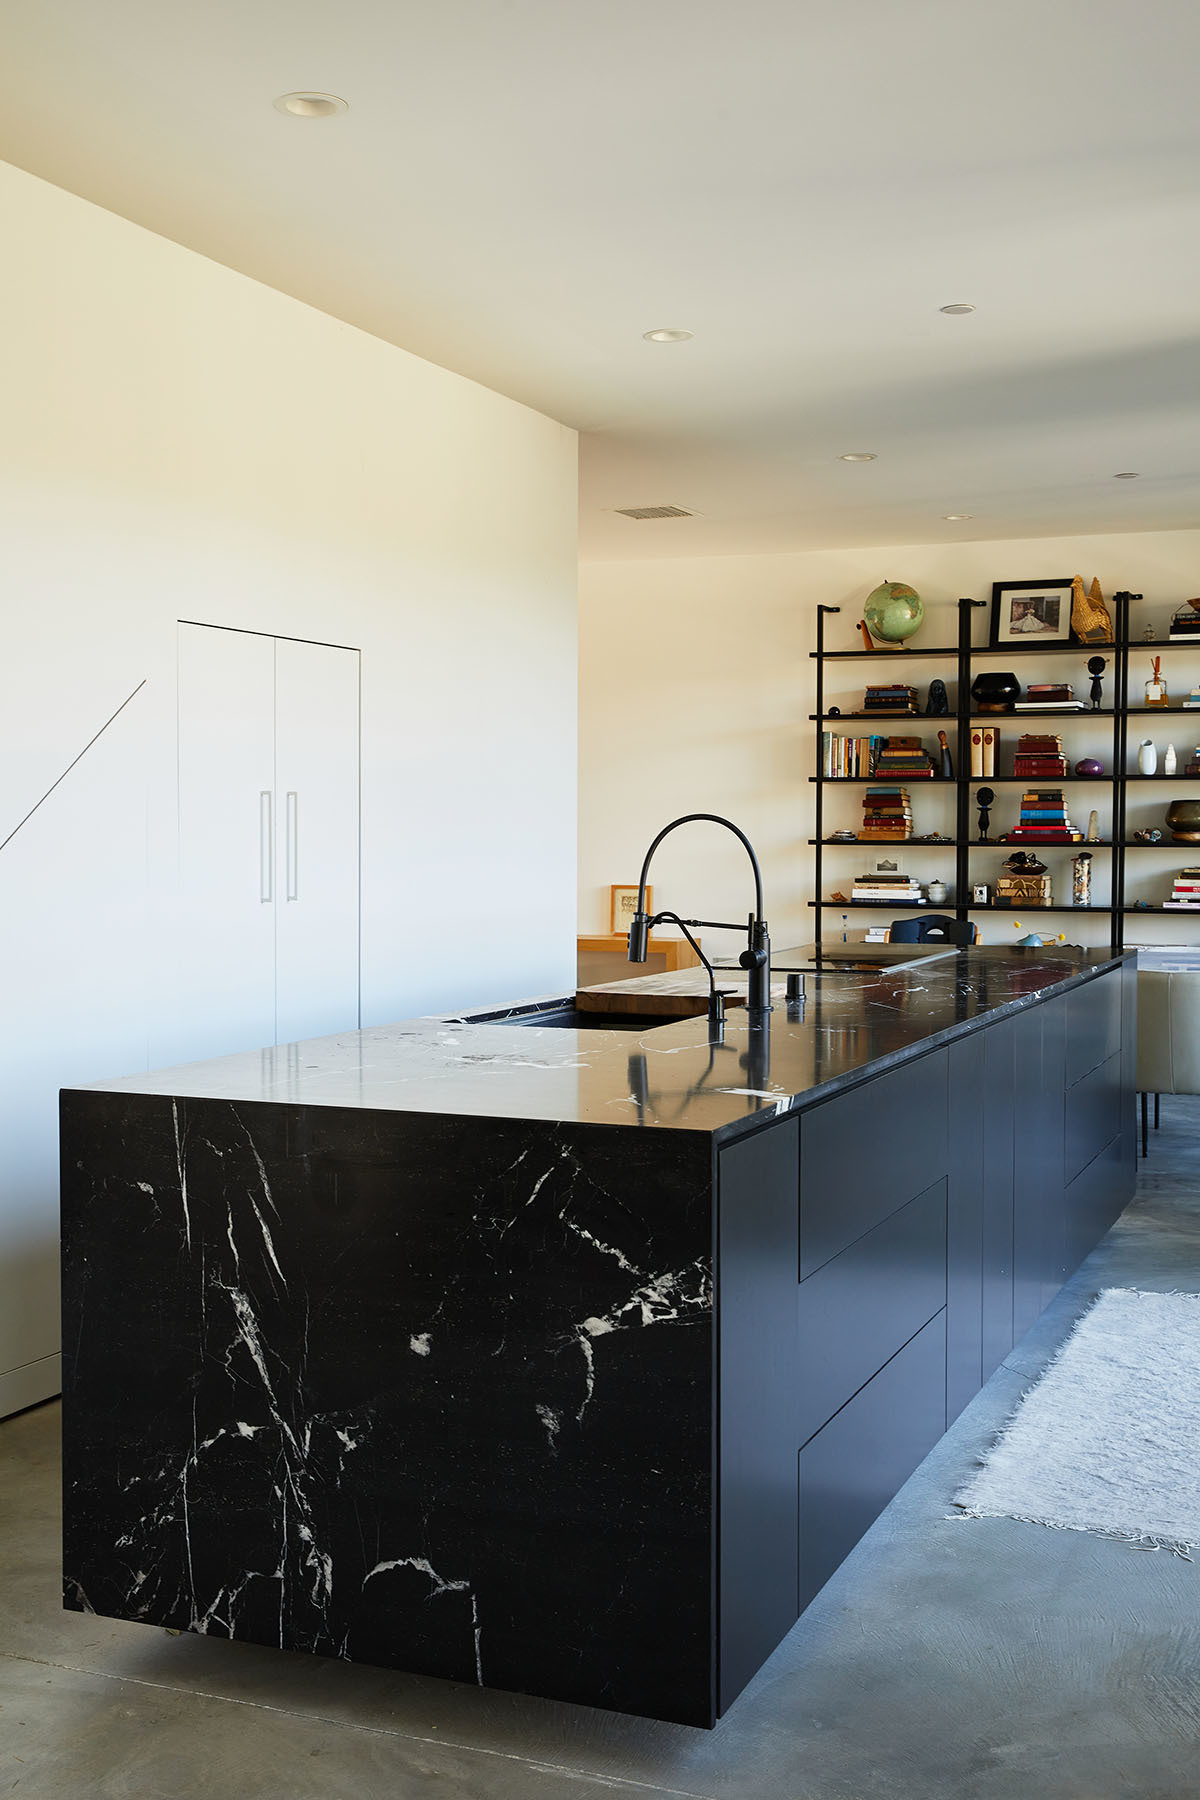 A custom marble kitchen island anchors the lower living level, complete with silent cabinetry and ample storage solutions. Dunn Edwards Paint | Custom Marquina Nero Marble Countertop | Custom Cabinetry | Brizo Faucet | Bosch Appliances | Kohler Sink | CB2 Shelving.